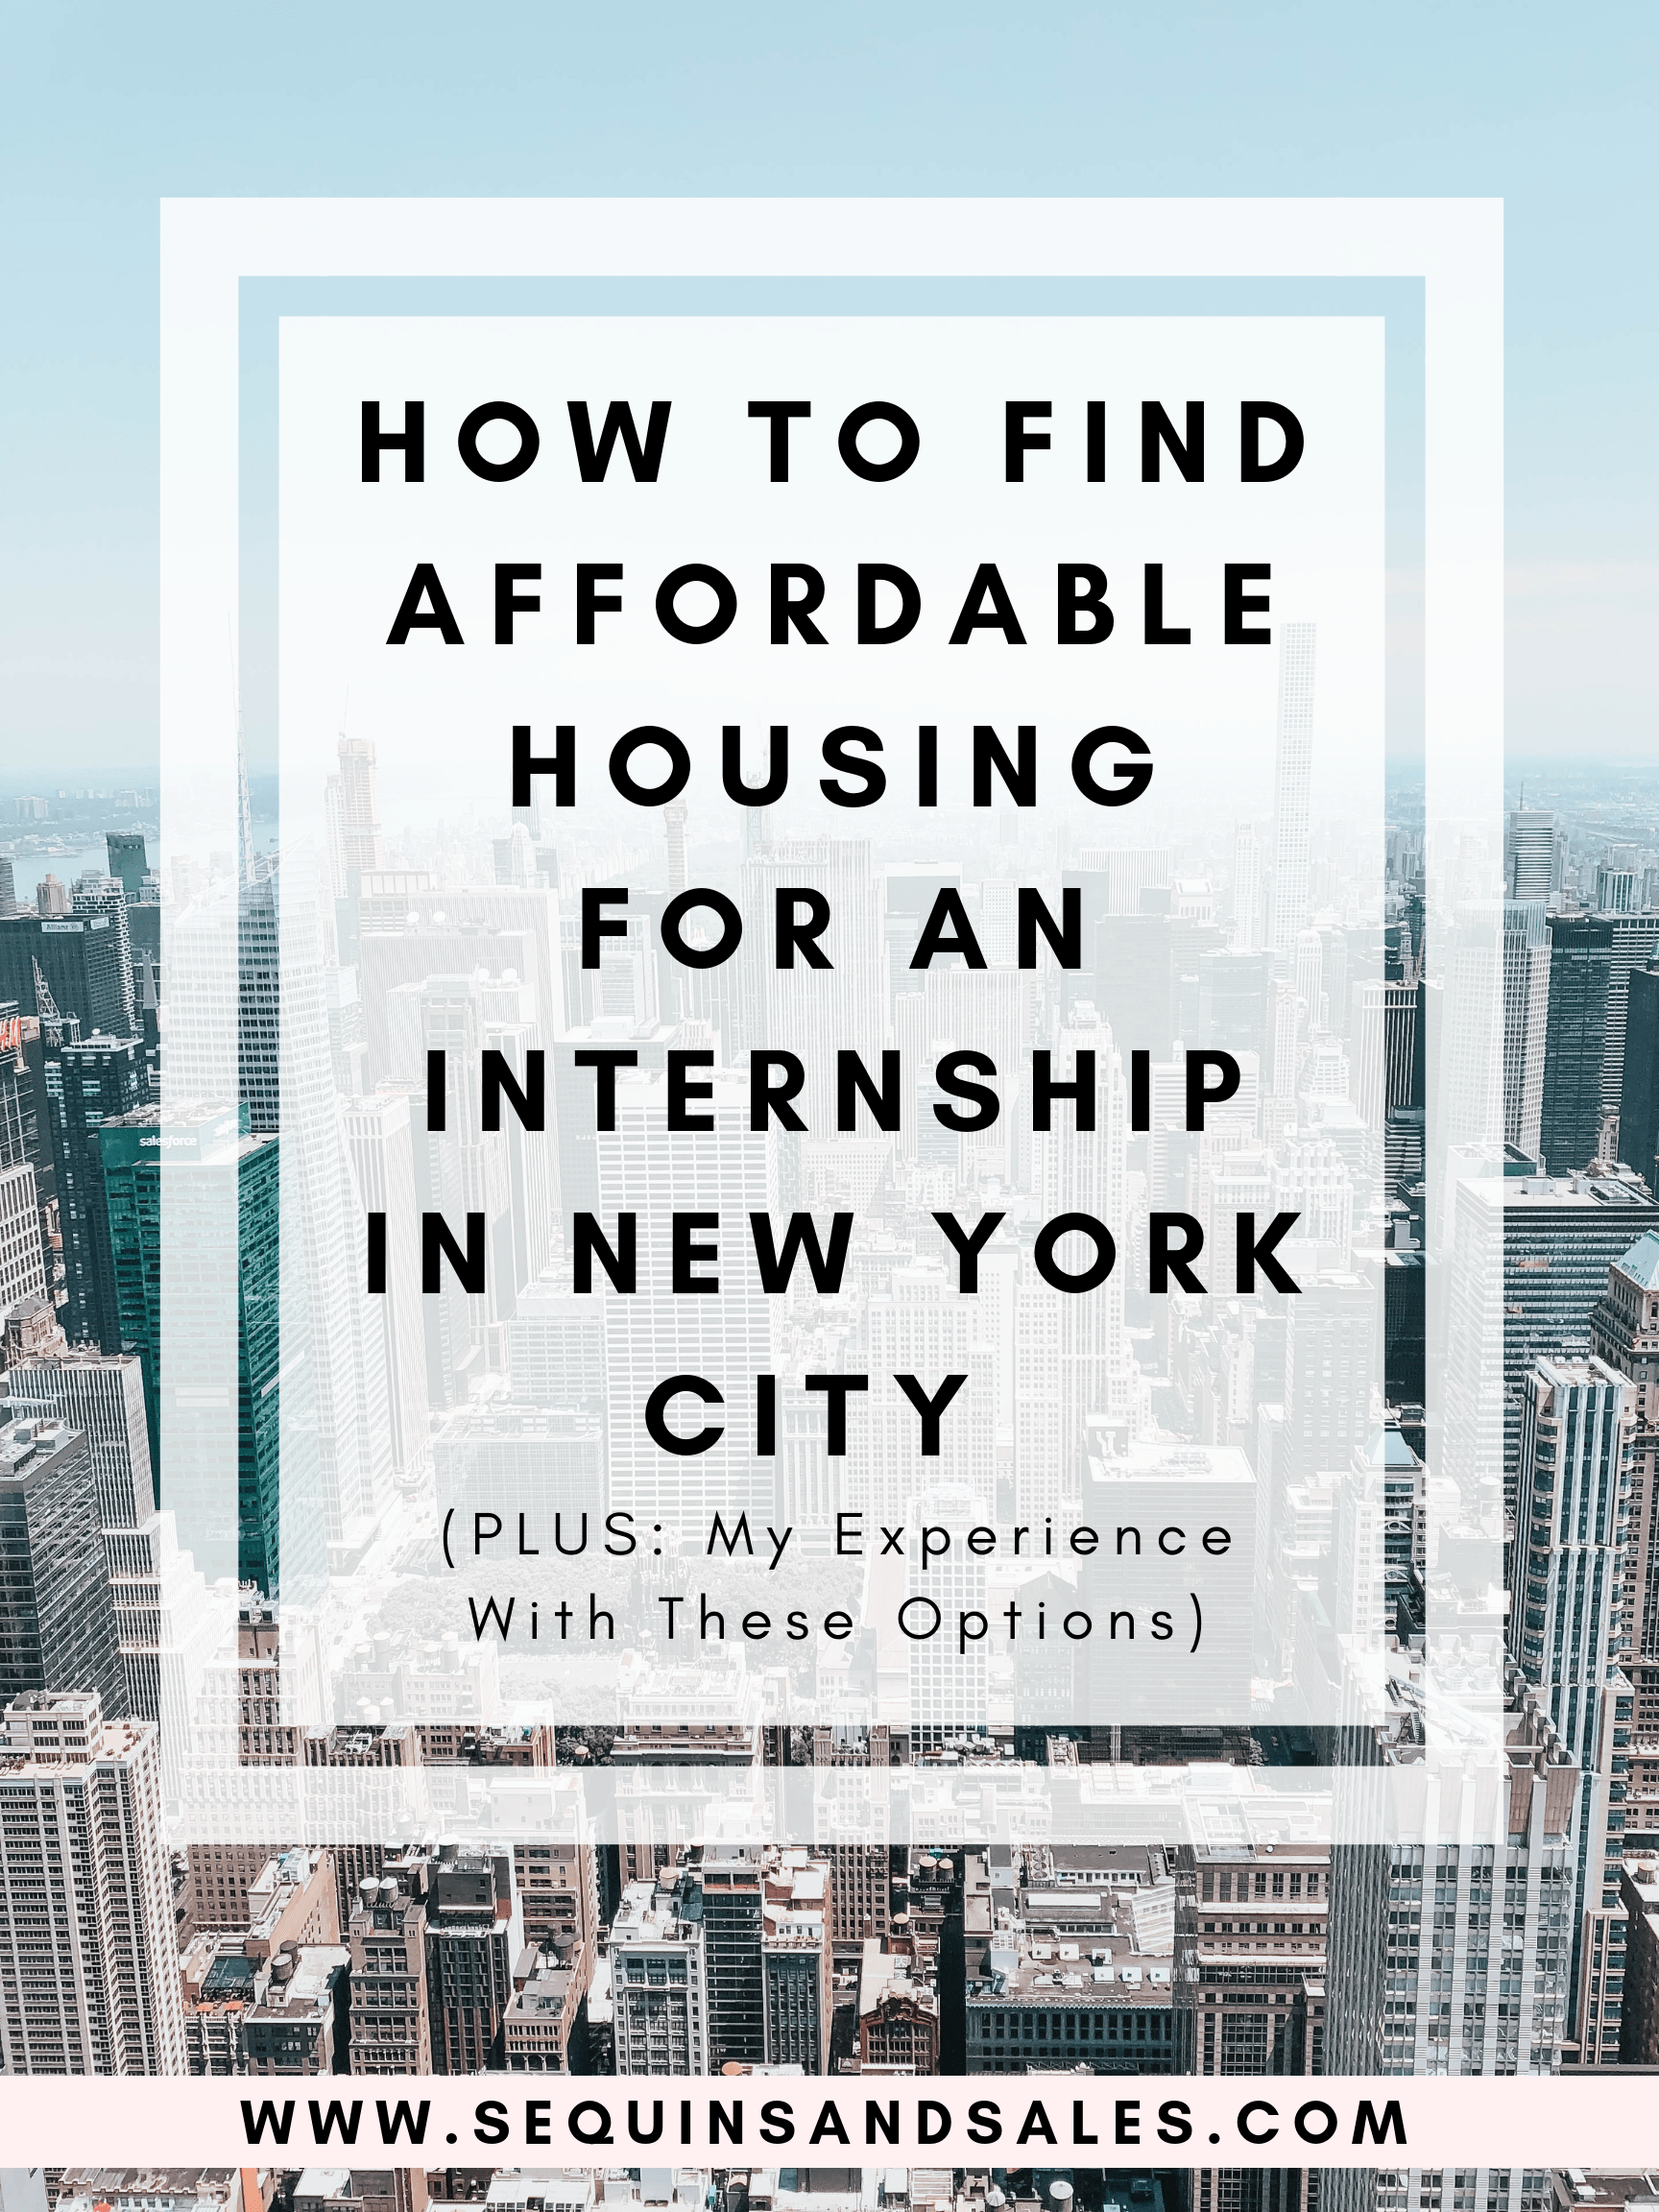 how-to-find-affordable-housing-for-an-internship-in-new-york-city